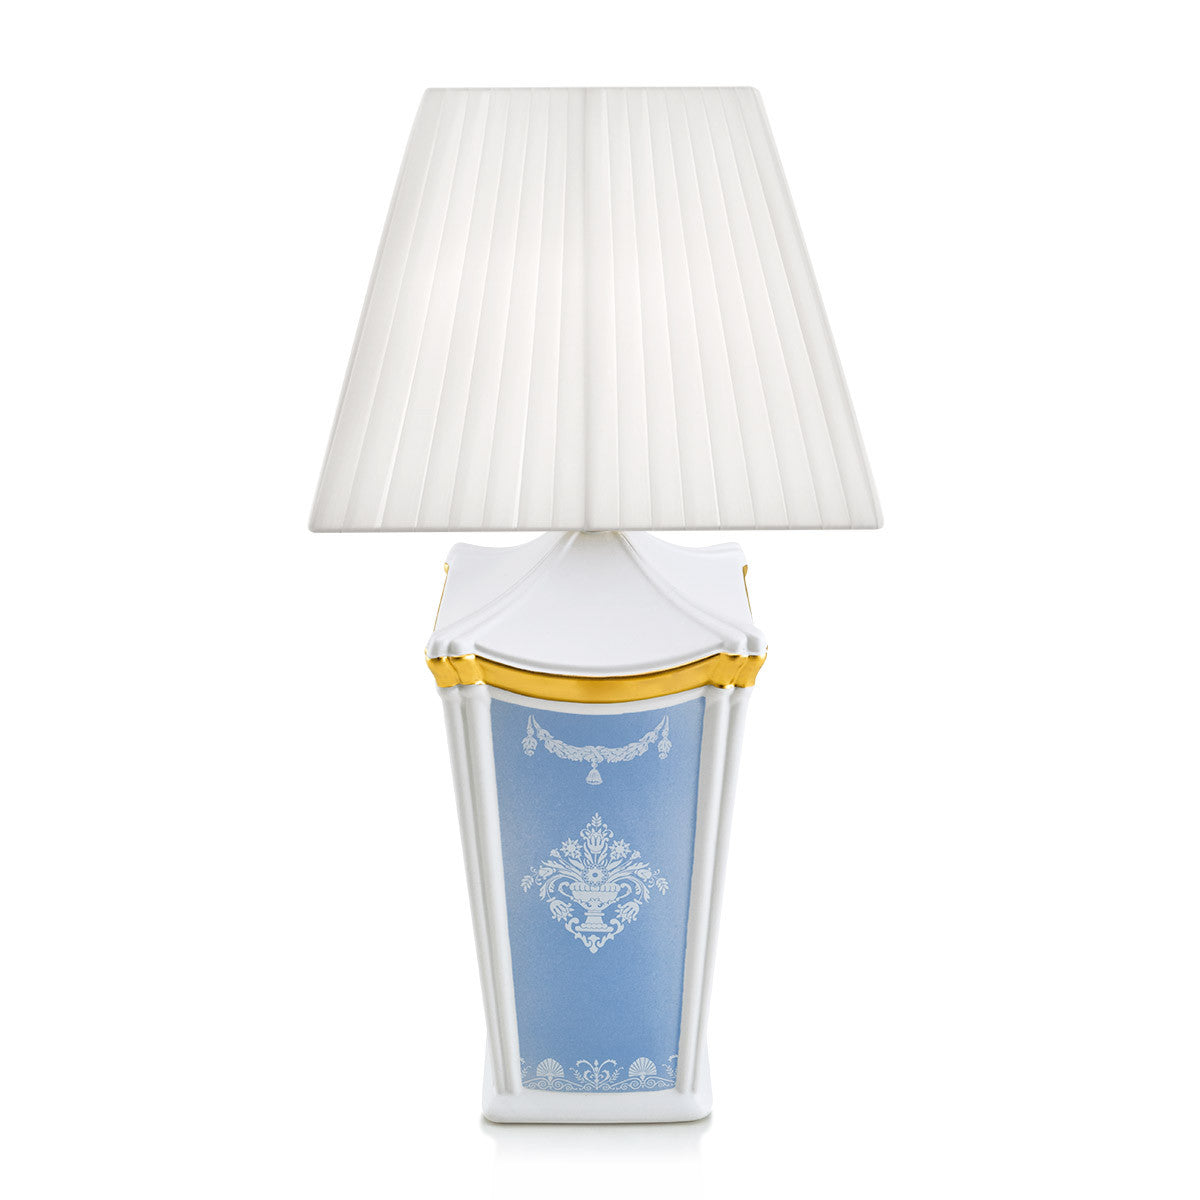 Ceramic square table lamp with white ornaments